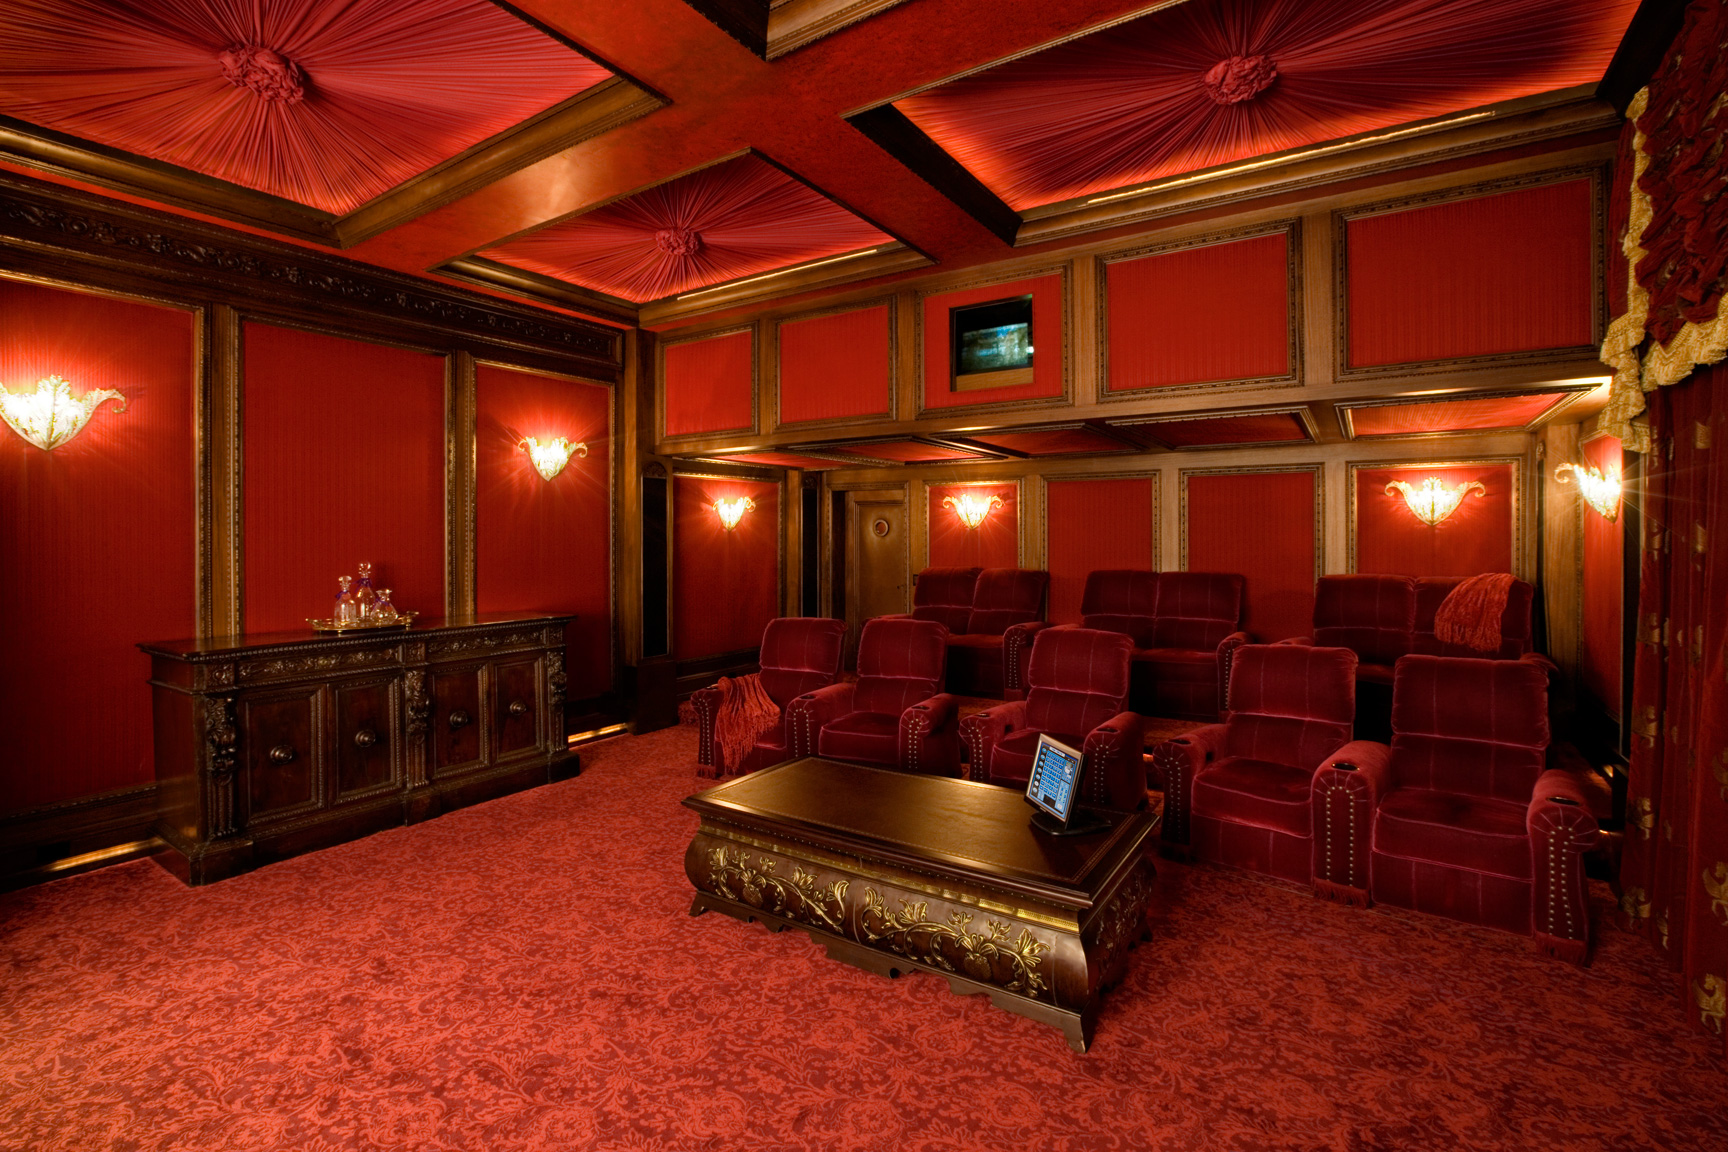 Theatre Room Seating Ideas